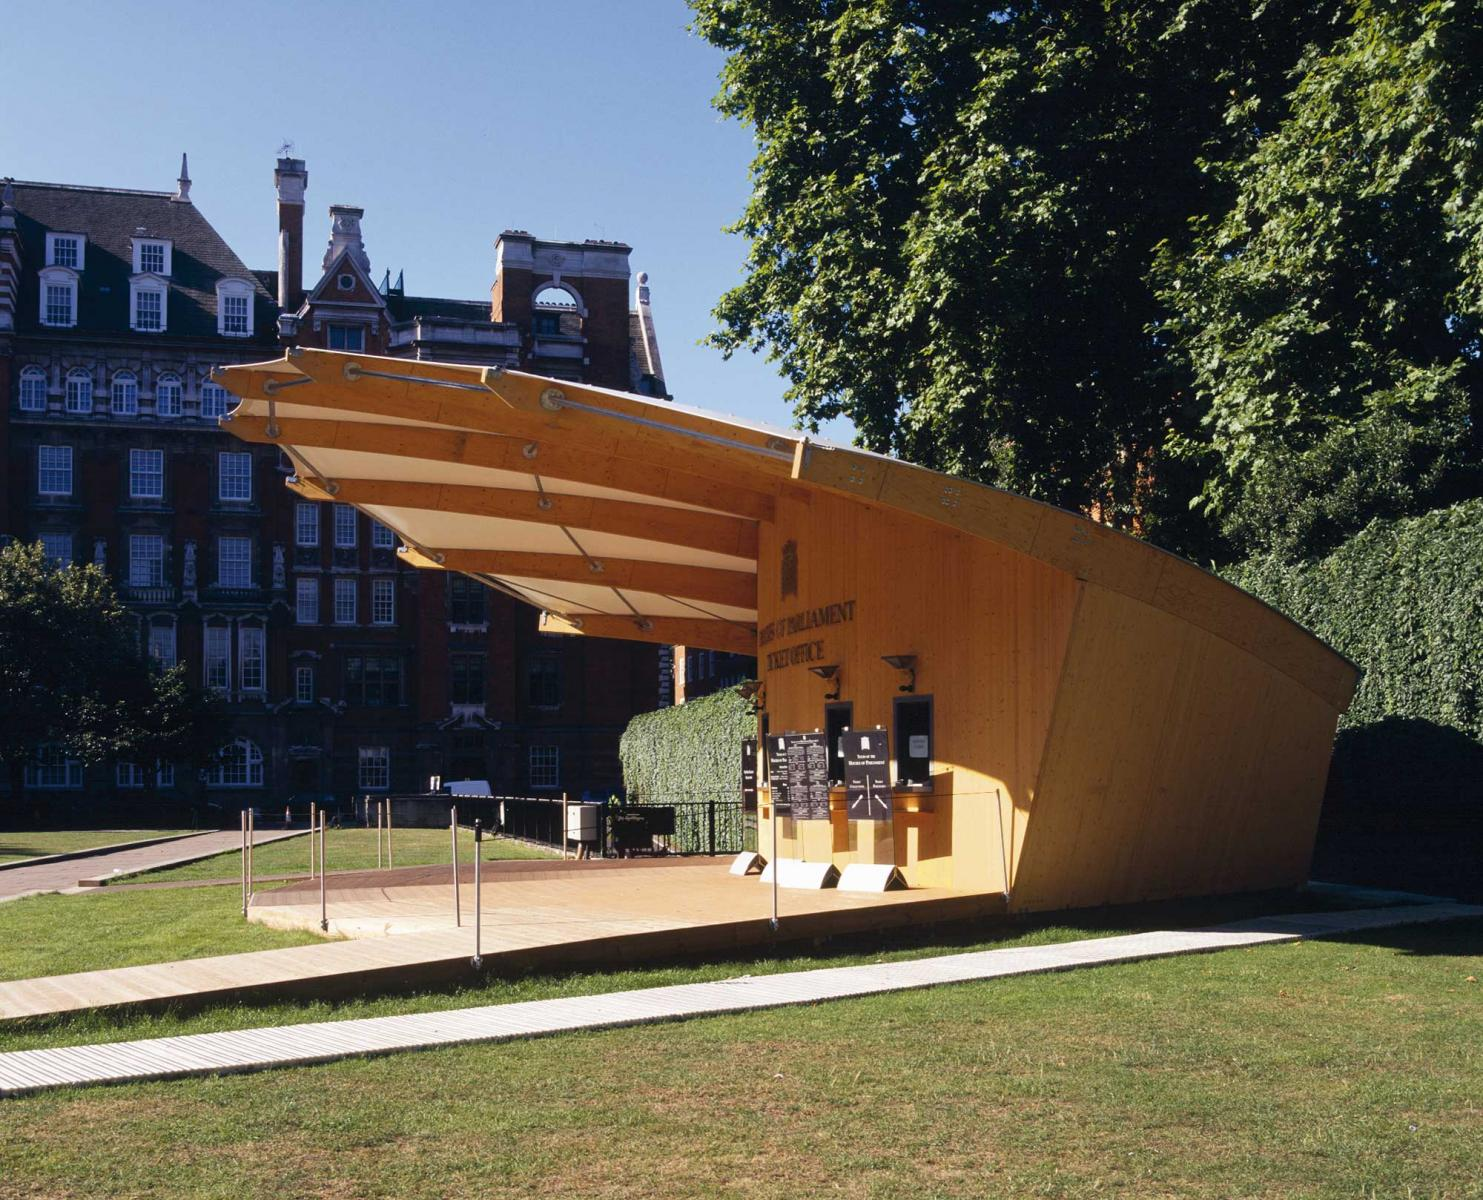 Ticket Pavilion for Summer Opening of Houses of Parlament - View from the side